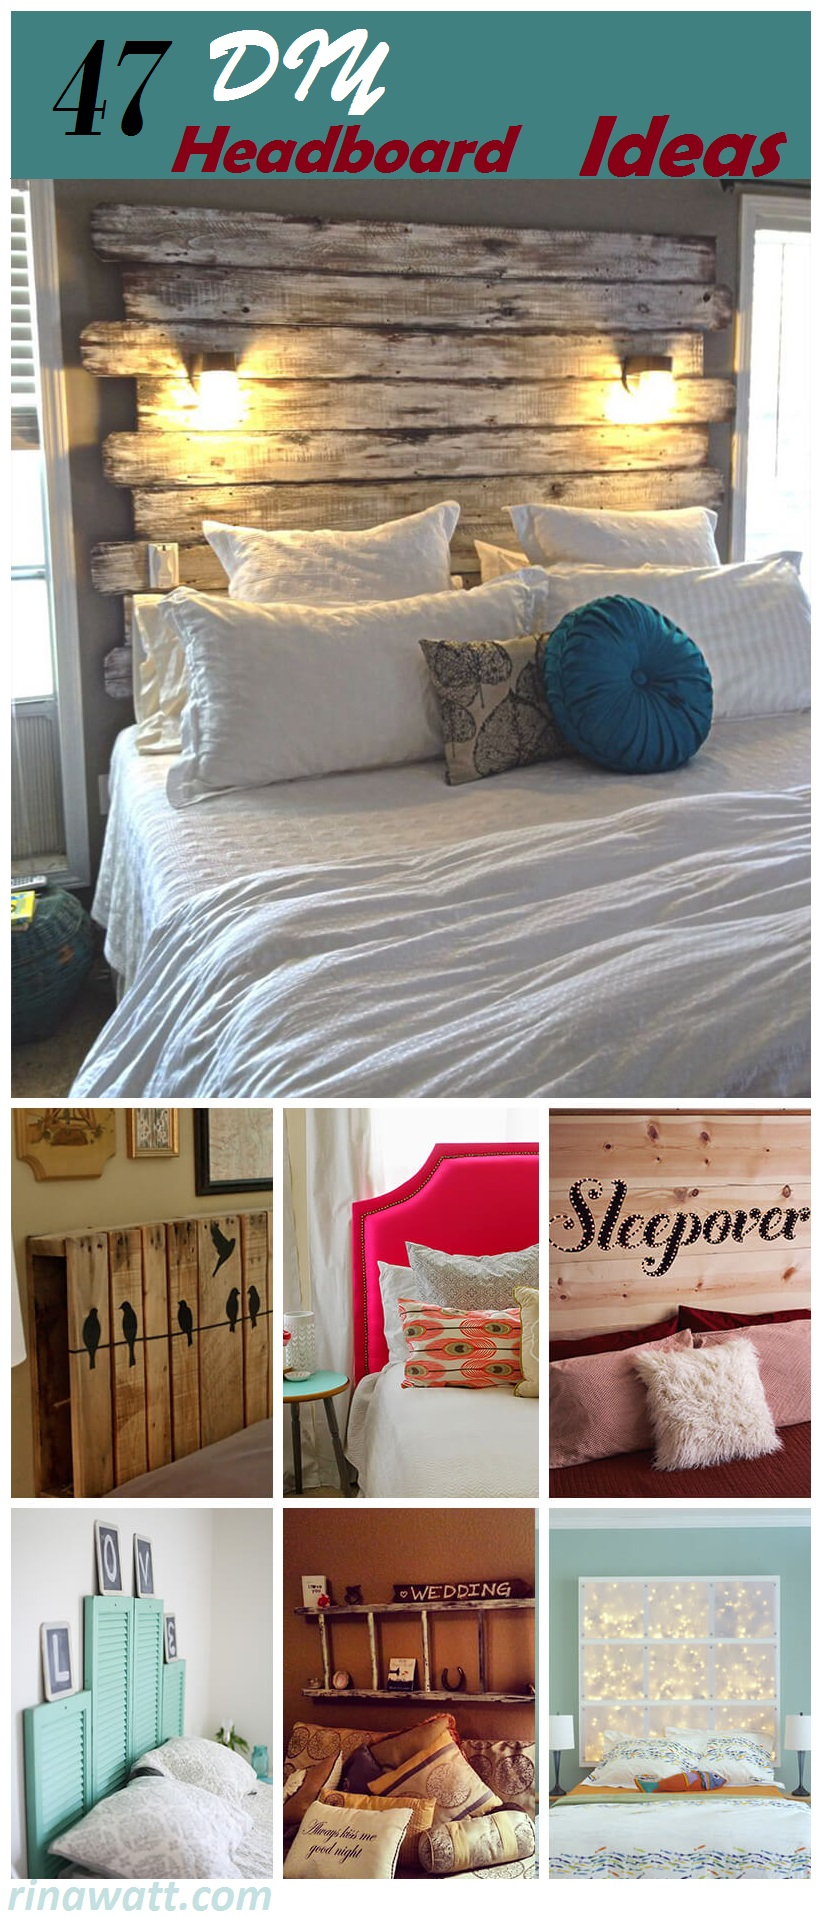 47 Of The Best Ways To Use Diy Headboards To Create The Room Of